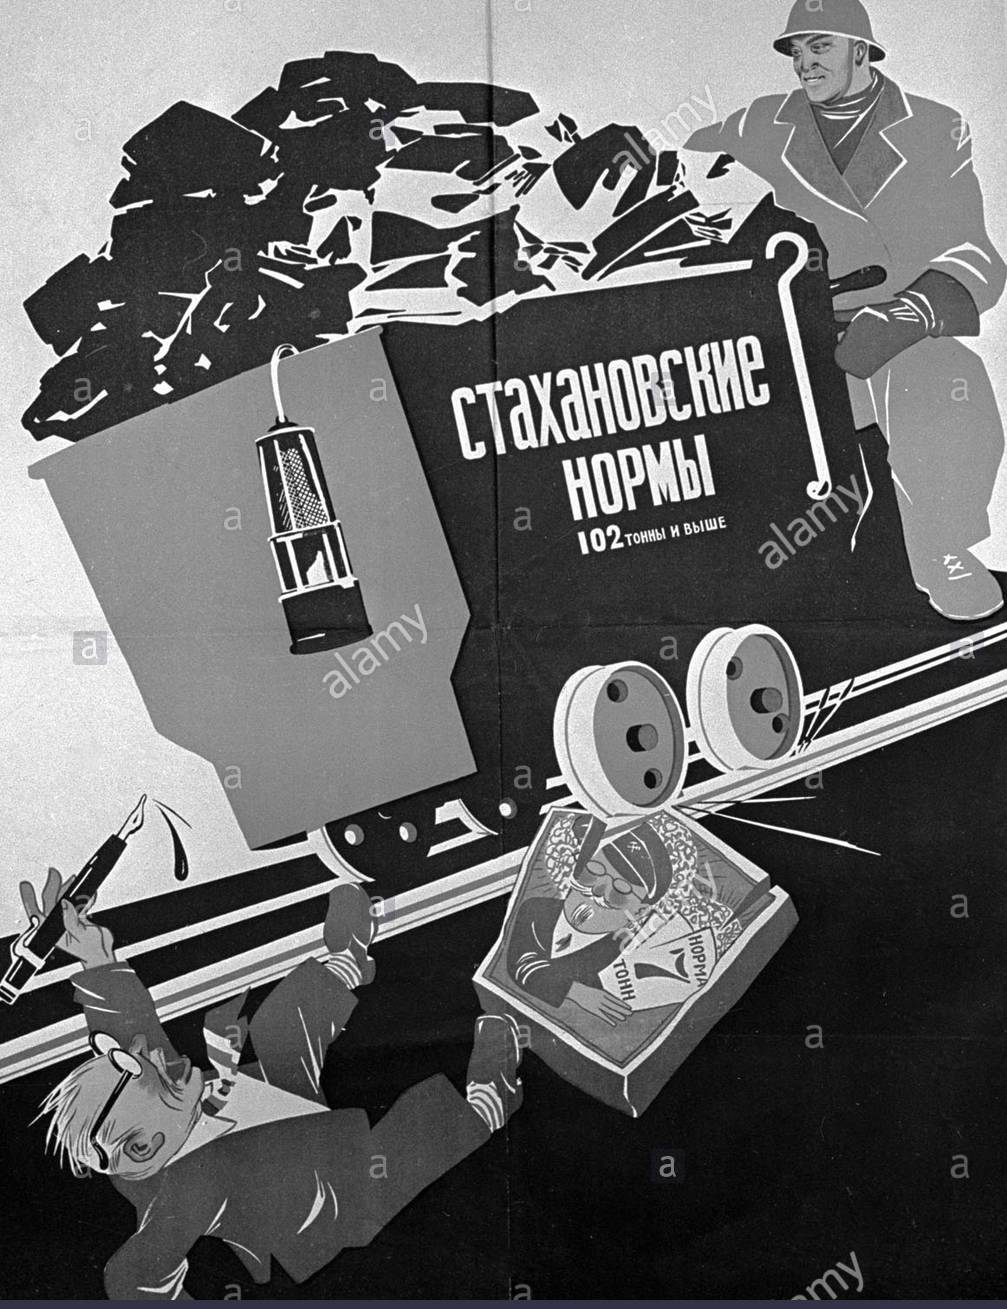 poster-glorifying-the-model-soviet-worker-stakhanov-movement-B923T5-2